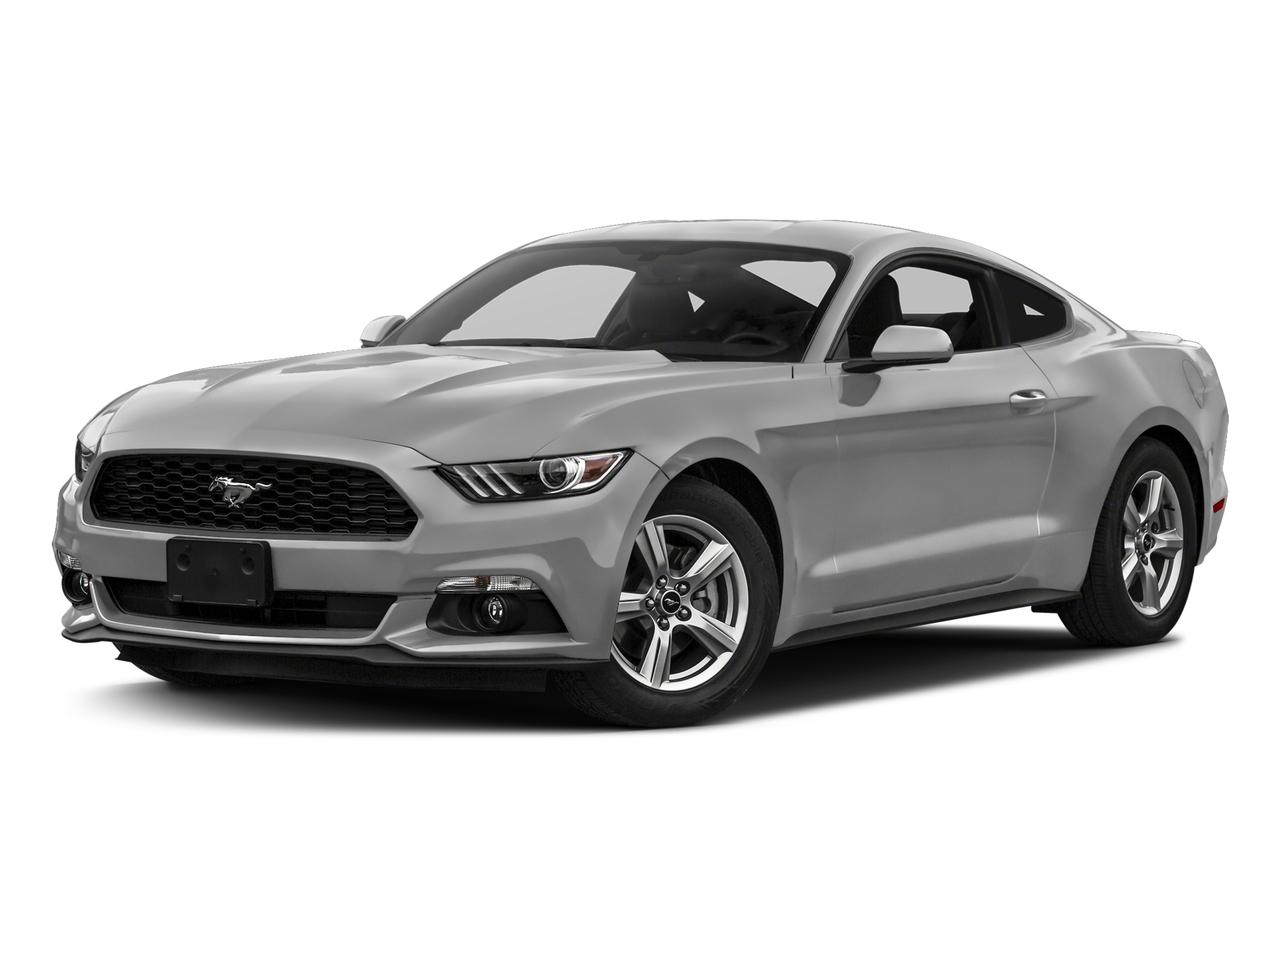 2017 Ford Mustang Vehicle Photo in Beaufort, SC 29906